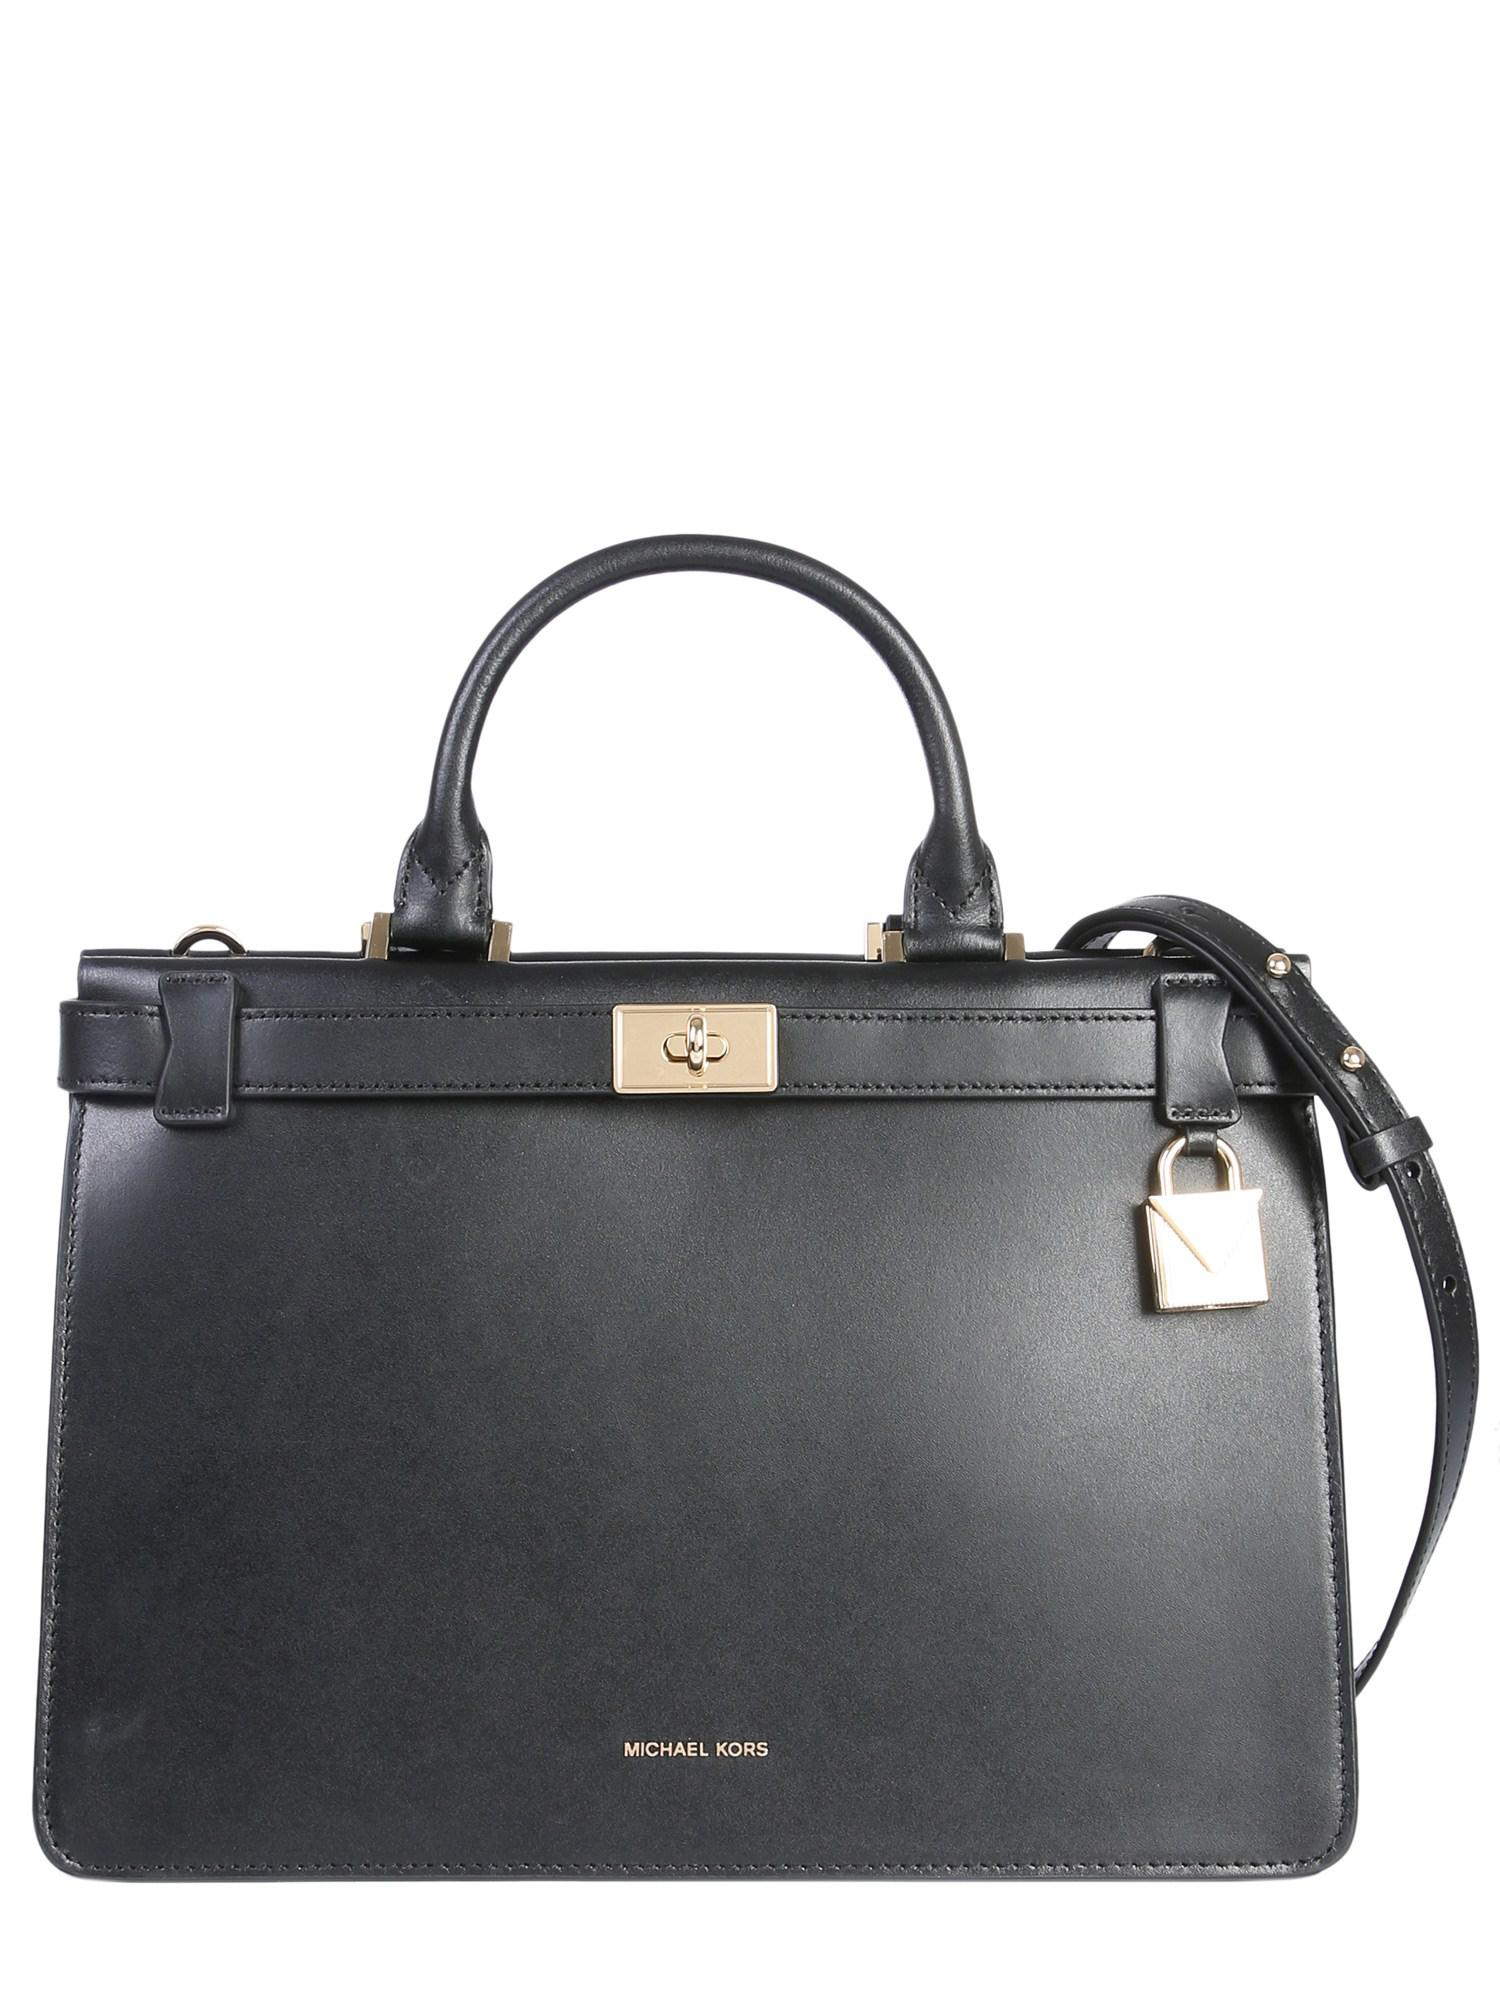 MICHAEL Michael Kors Medium Tatiana Leather Handbag in Black - Lyst 95aed880f54